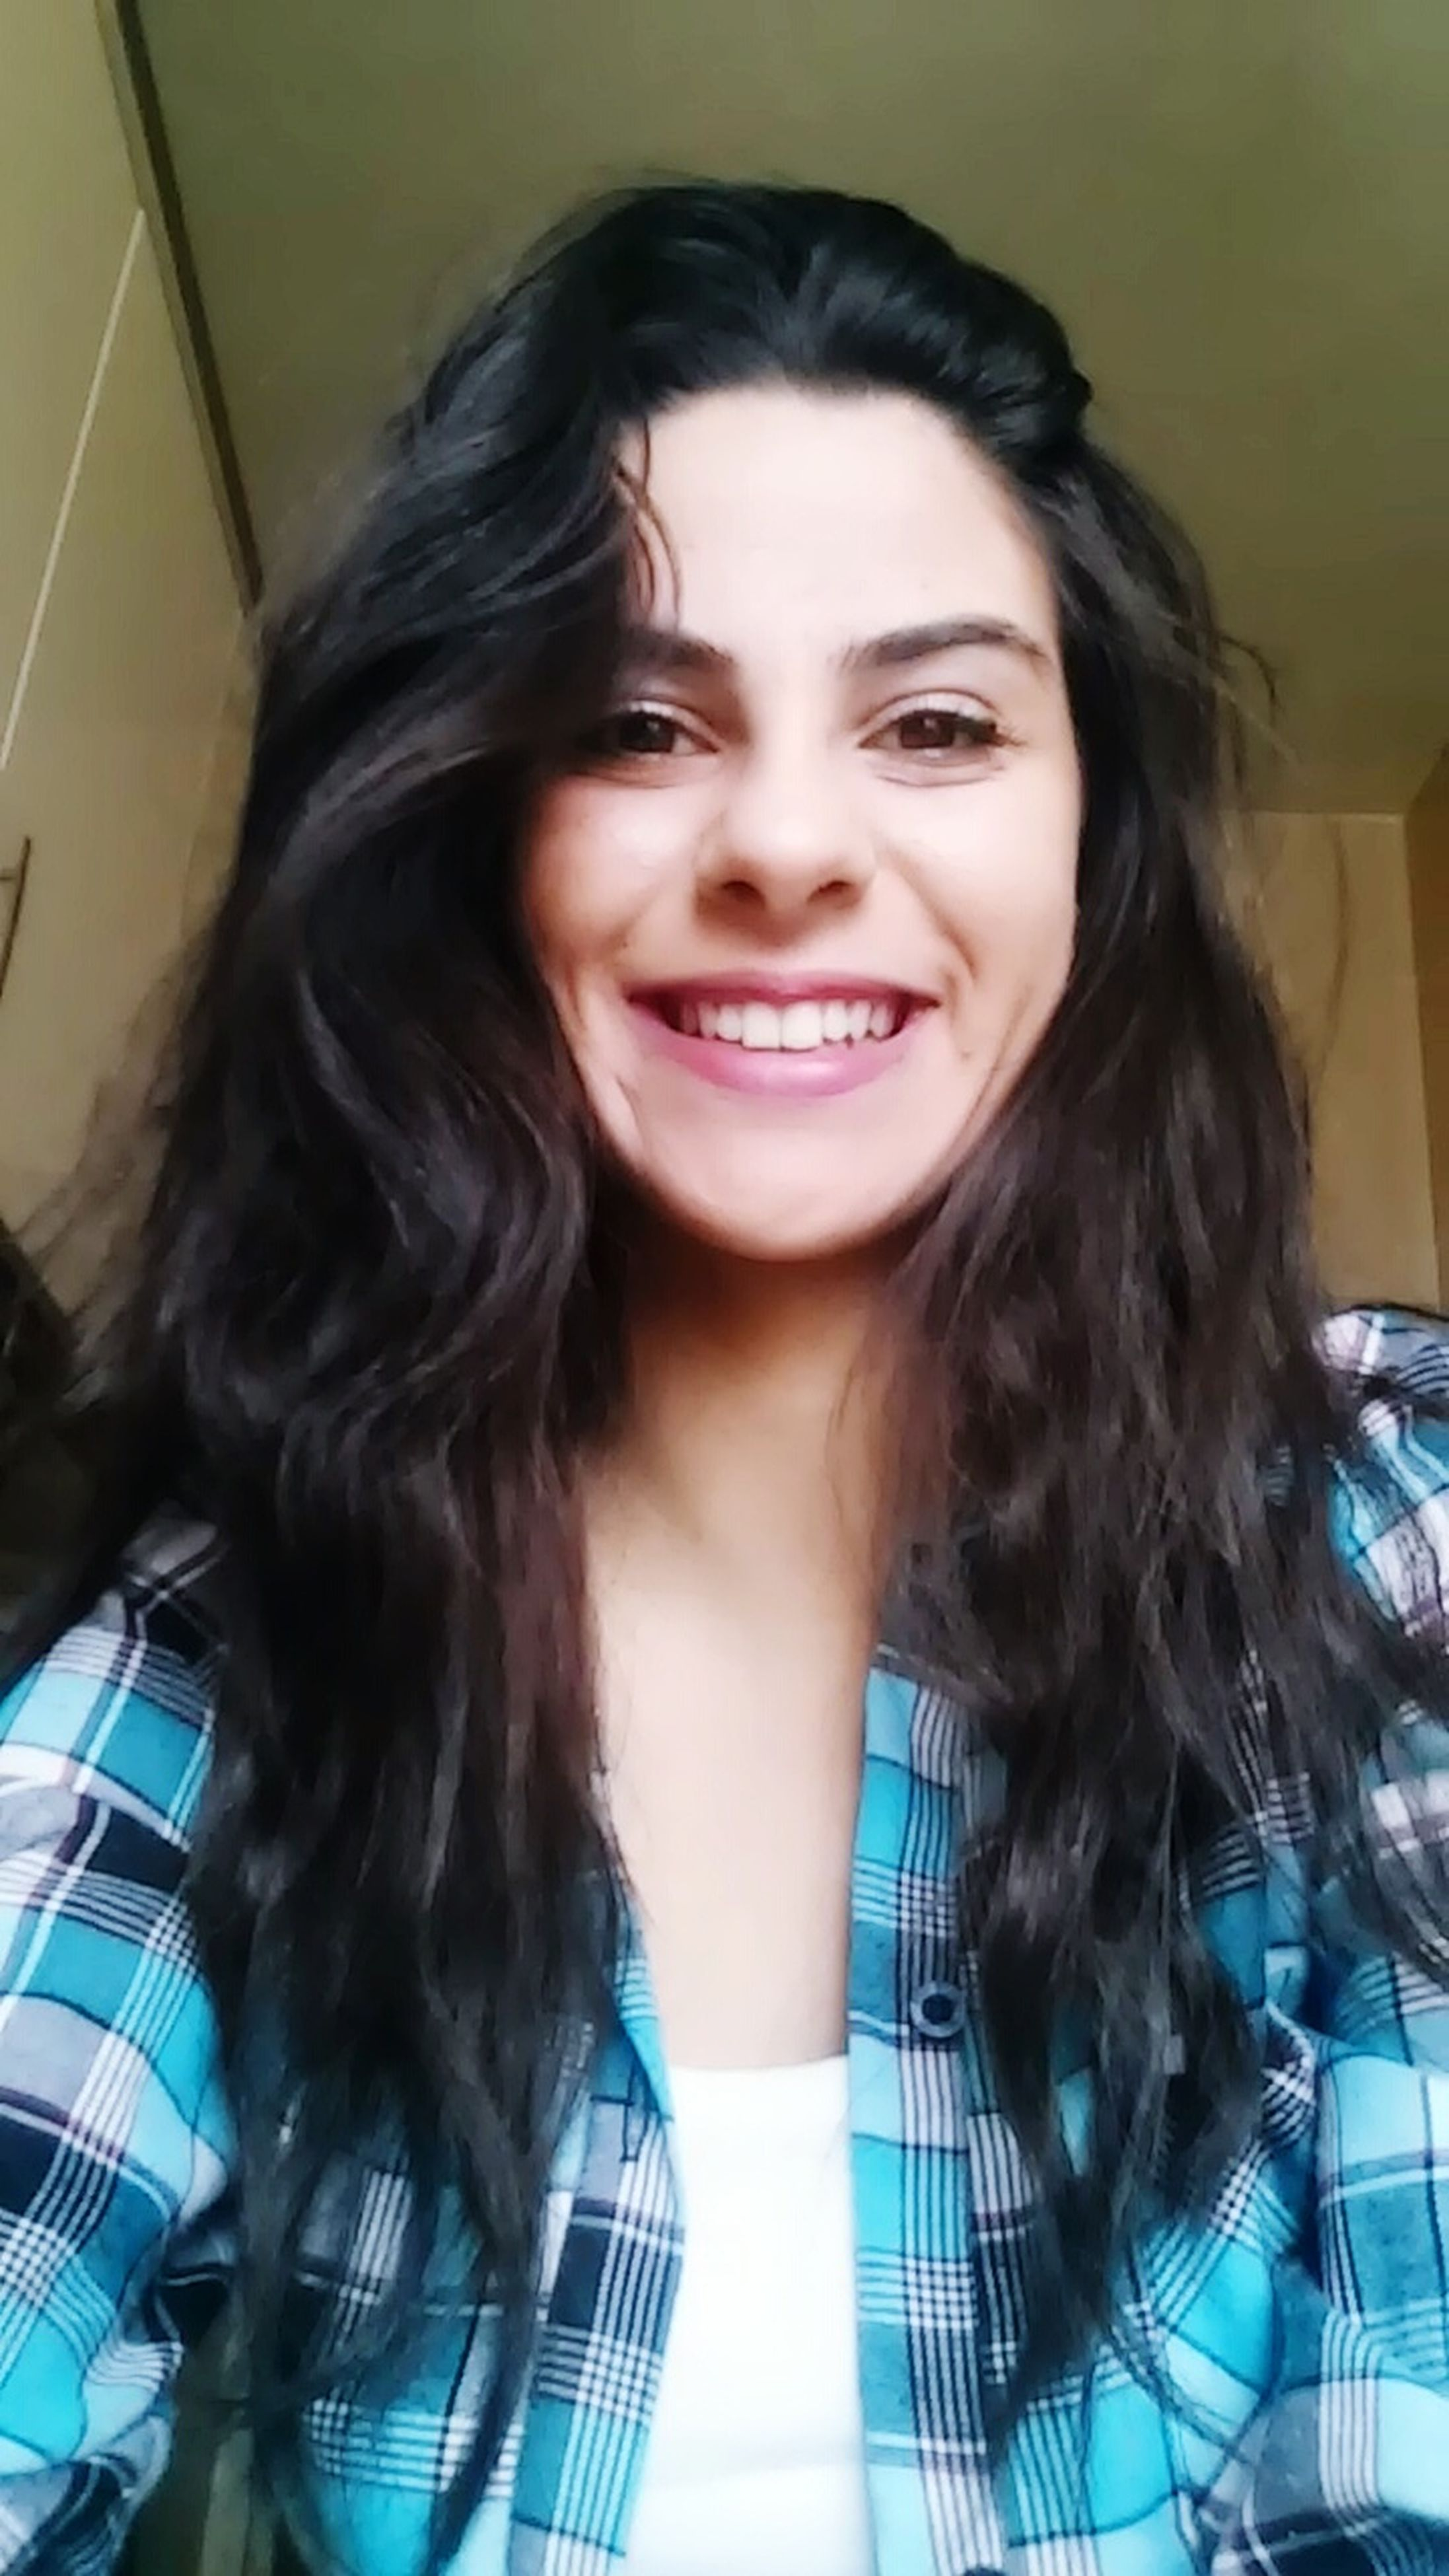 portrait, looking at camera, young adult, person, young women, lifestyles, indoors, front view, long hair, leisure activity, smiling, casual clothing, headshot, happiness, waist up, toothy smile